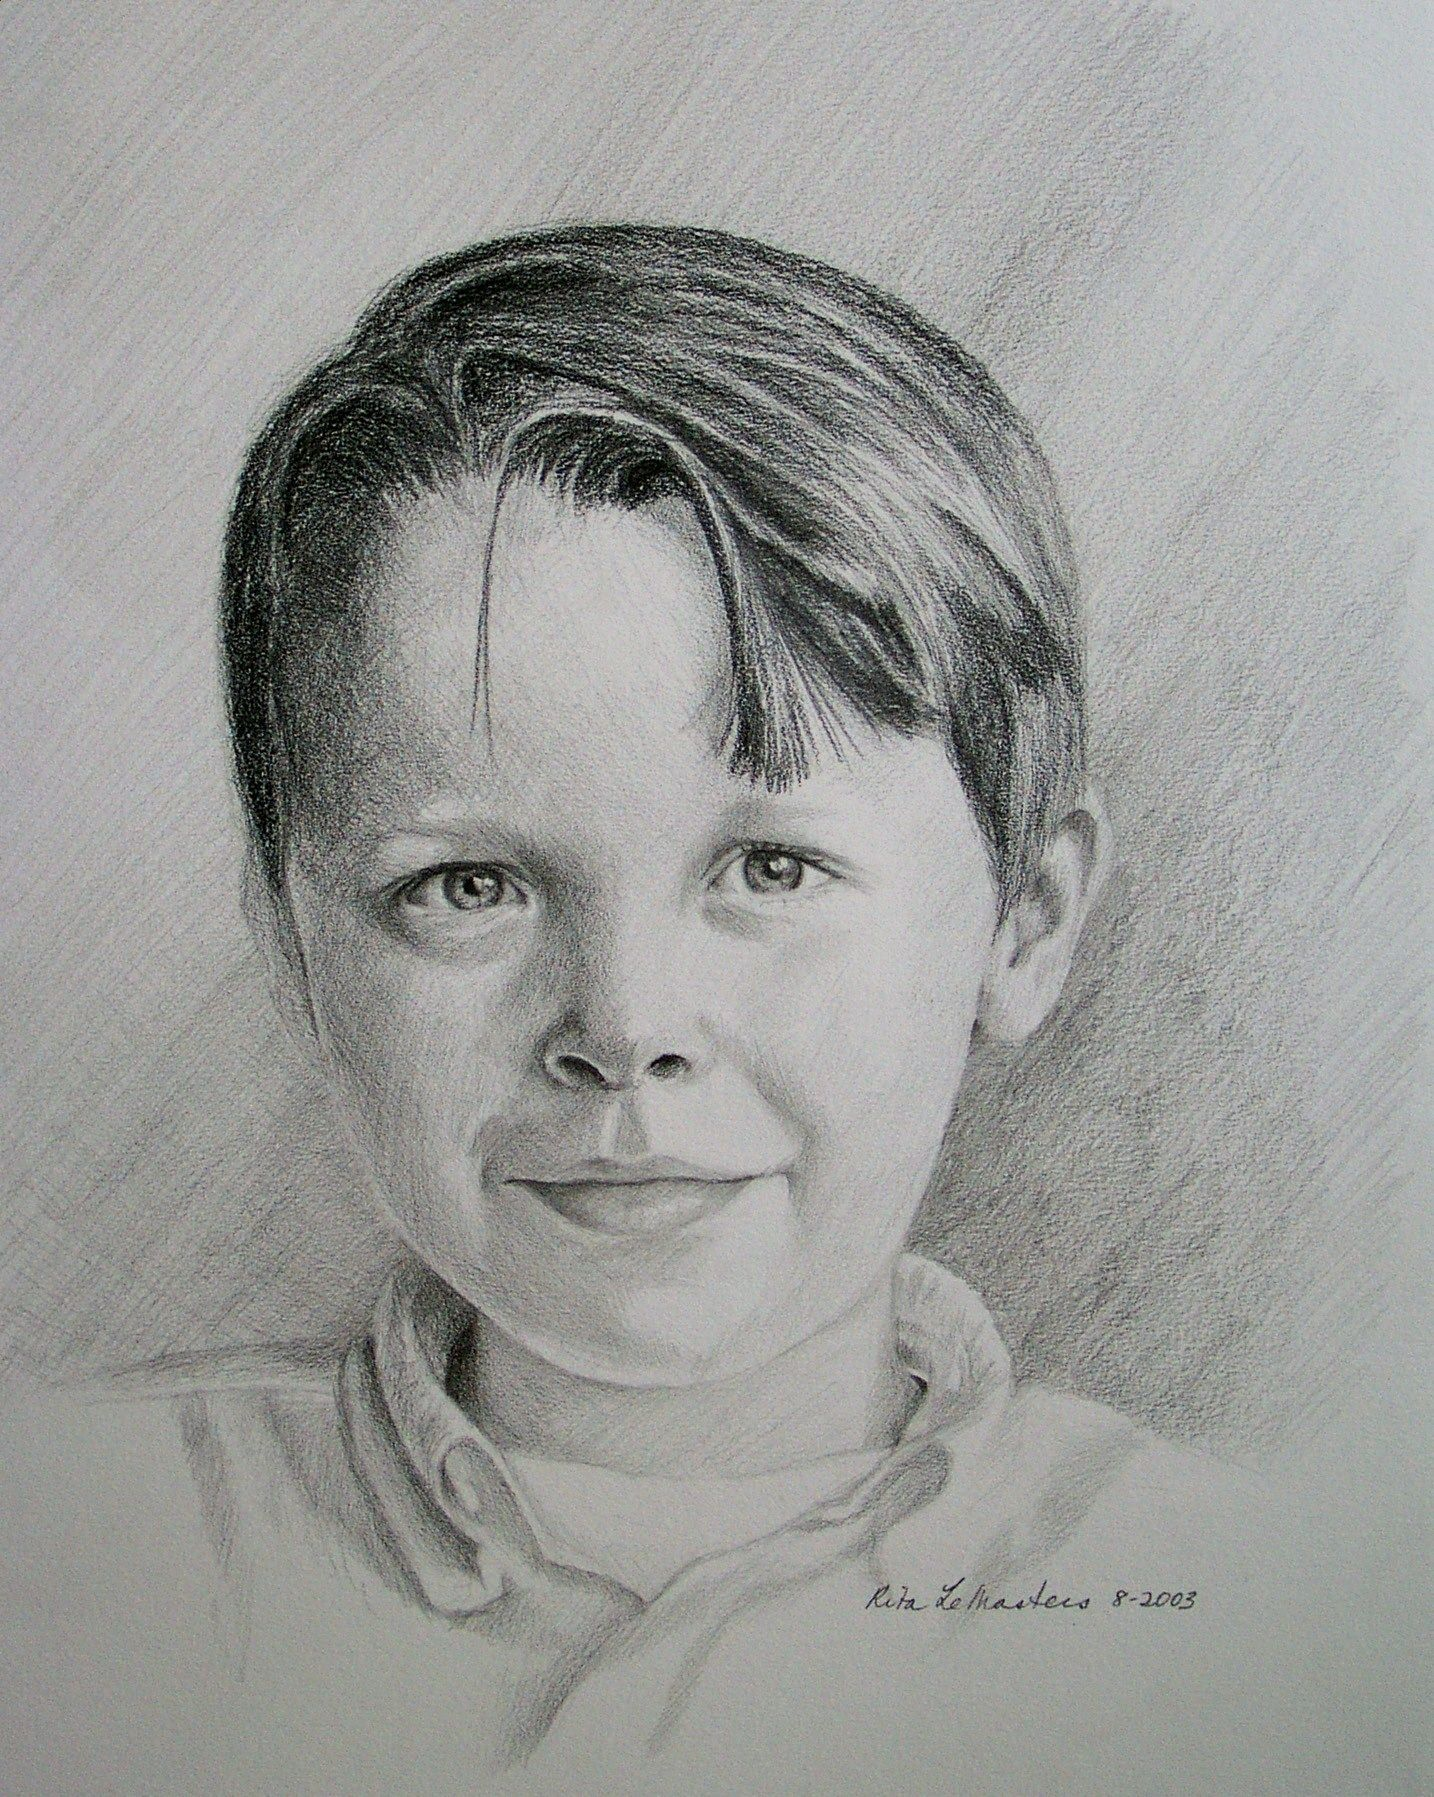 9x12 graphite portrait pencil art pencil drawings art drawings professional portrait